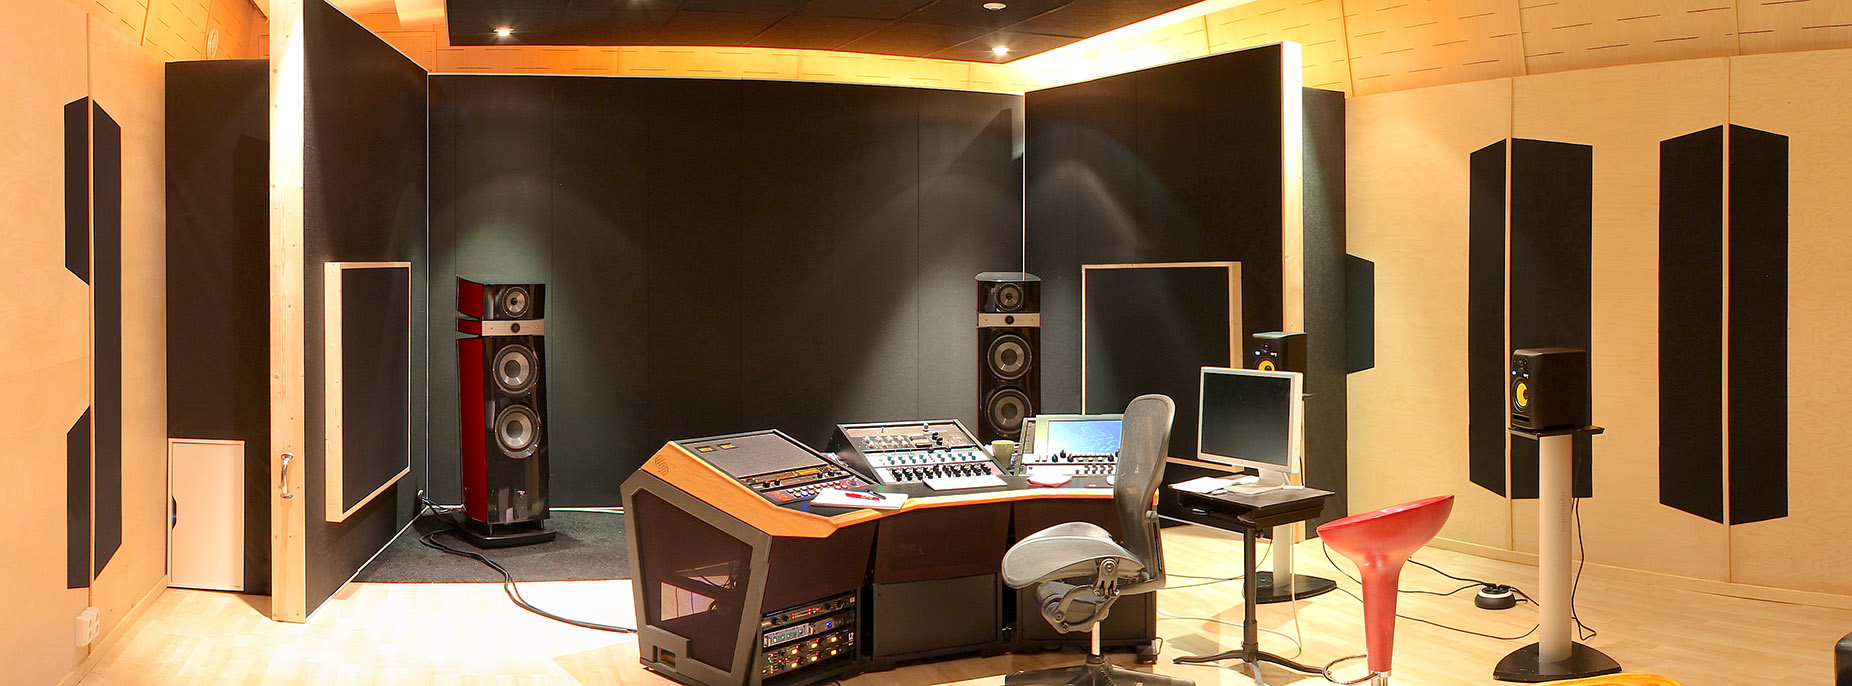 Monsterlab Audio mastering studio, Stockholm